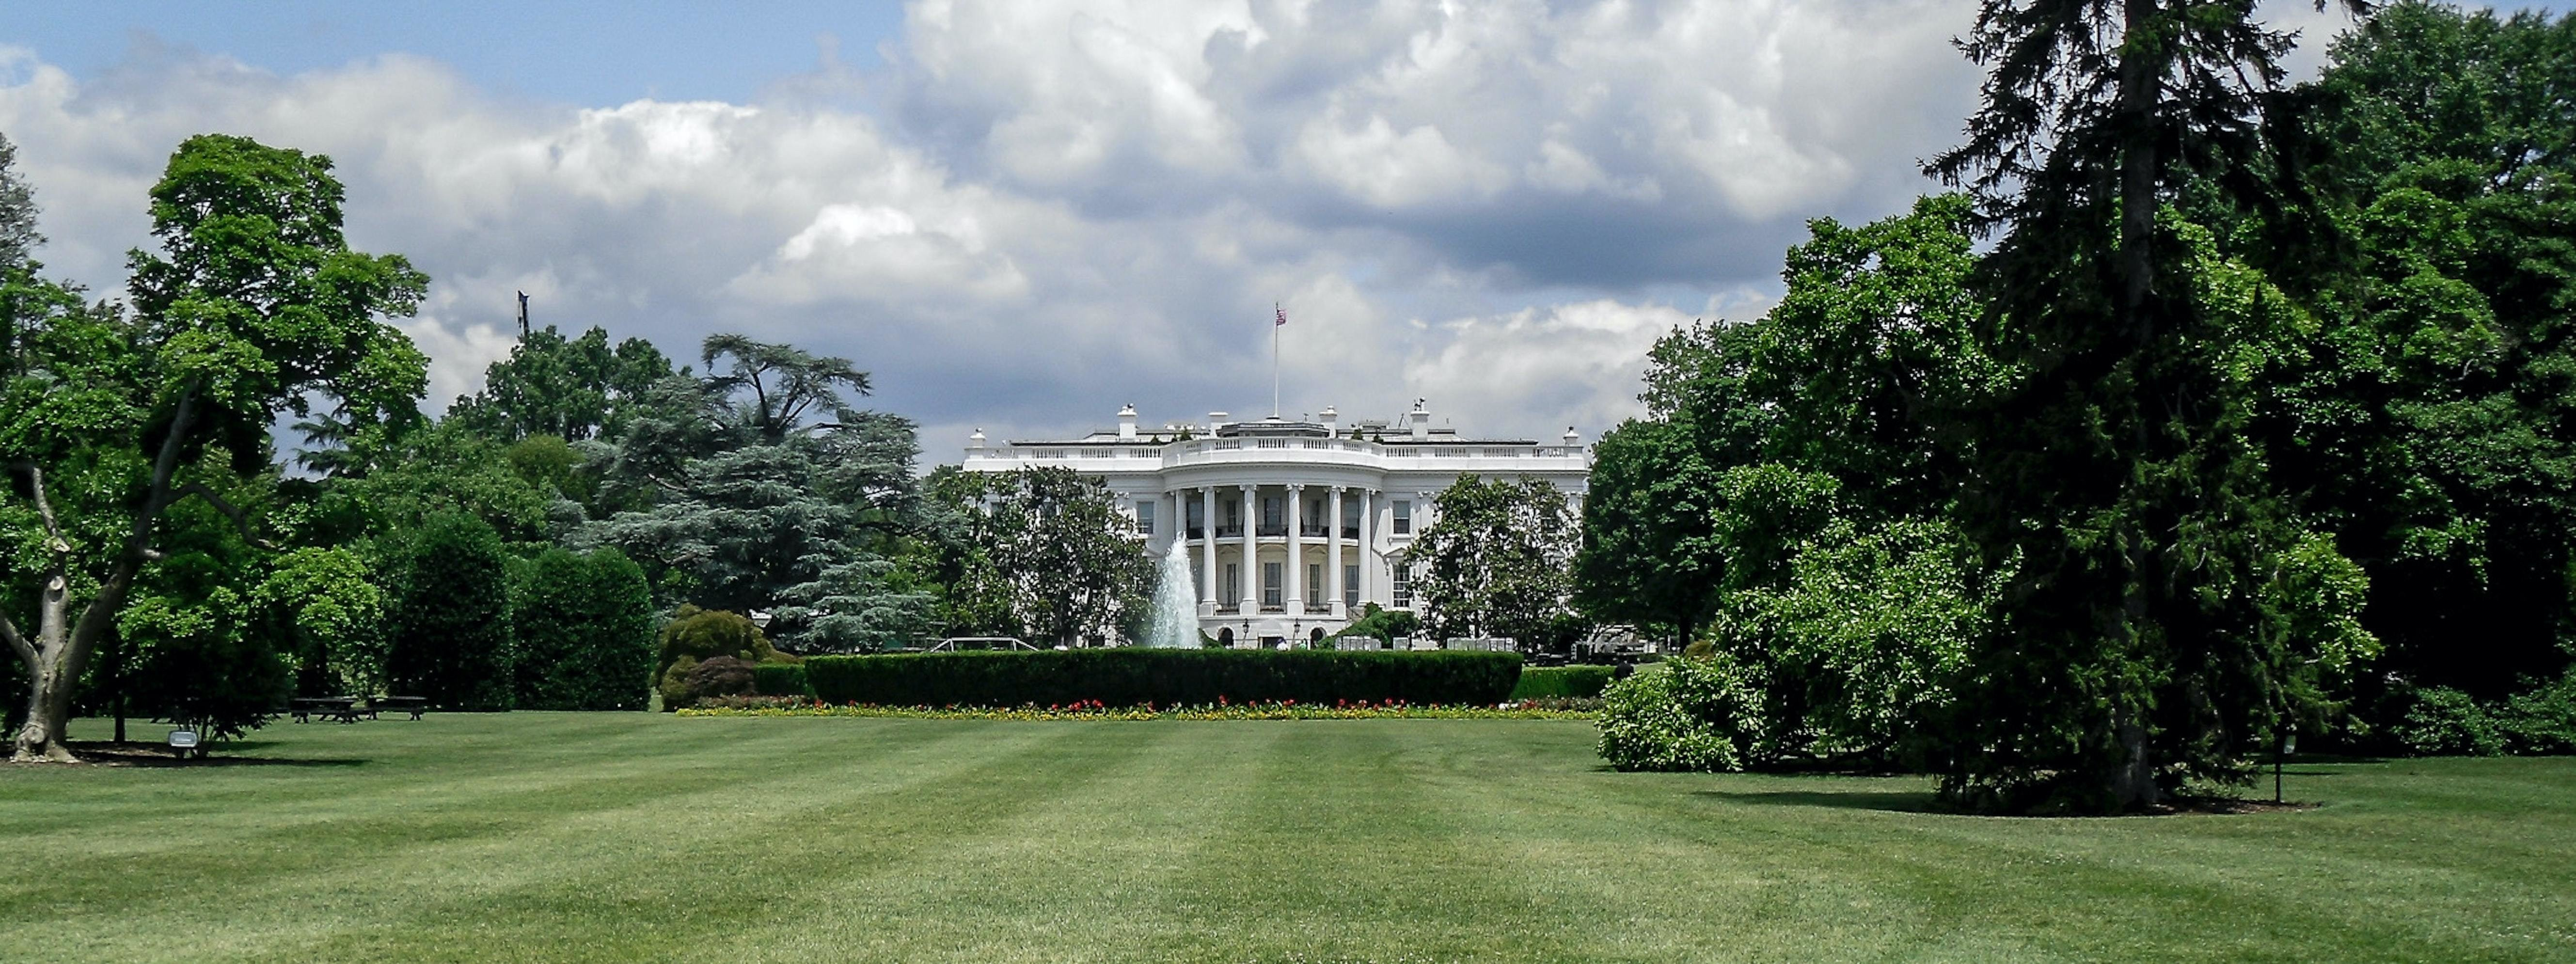 shown here is the White House. a staff member who was working there at the time of 9/11 has shared their experience